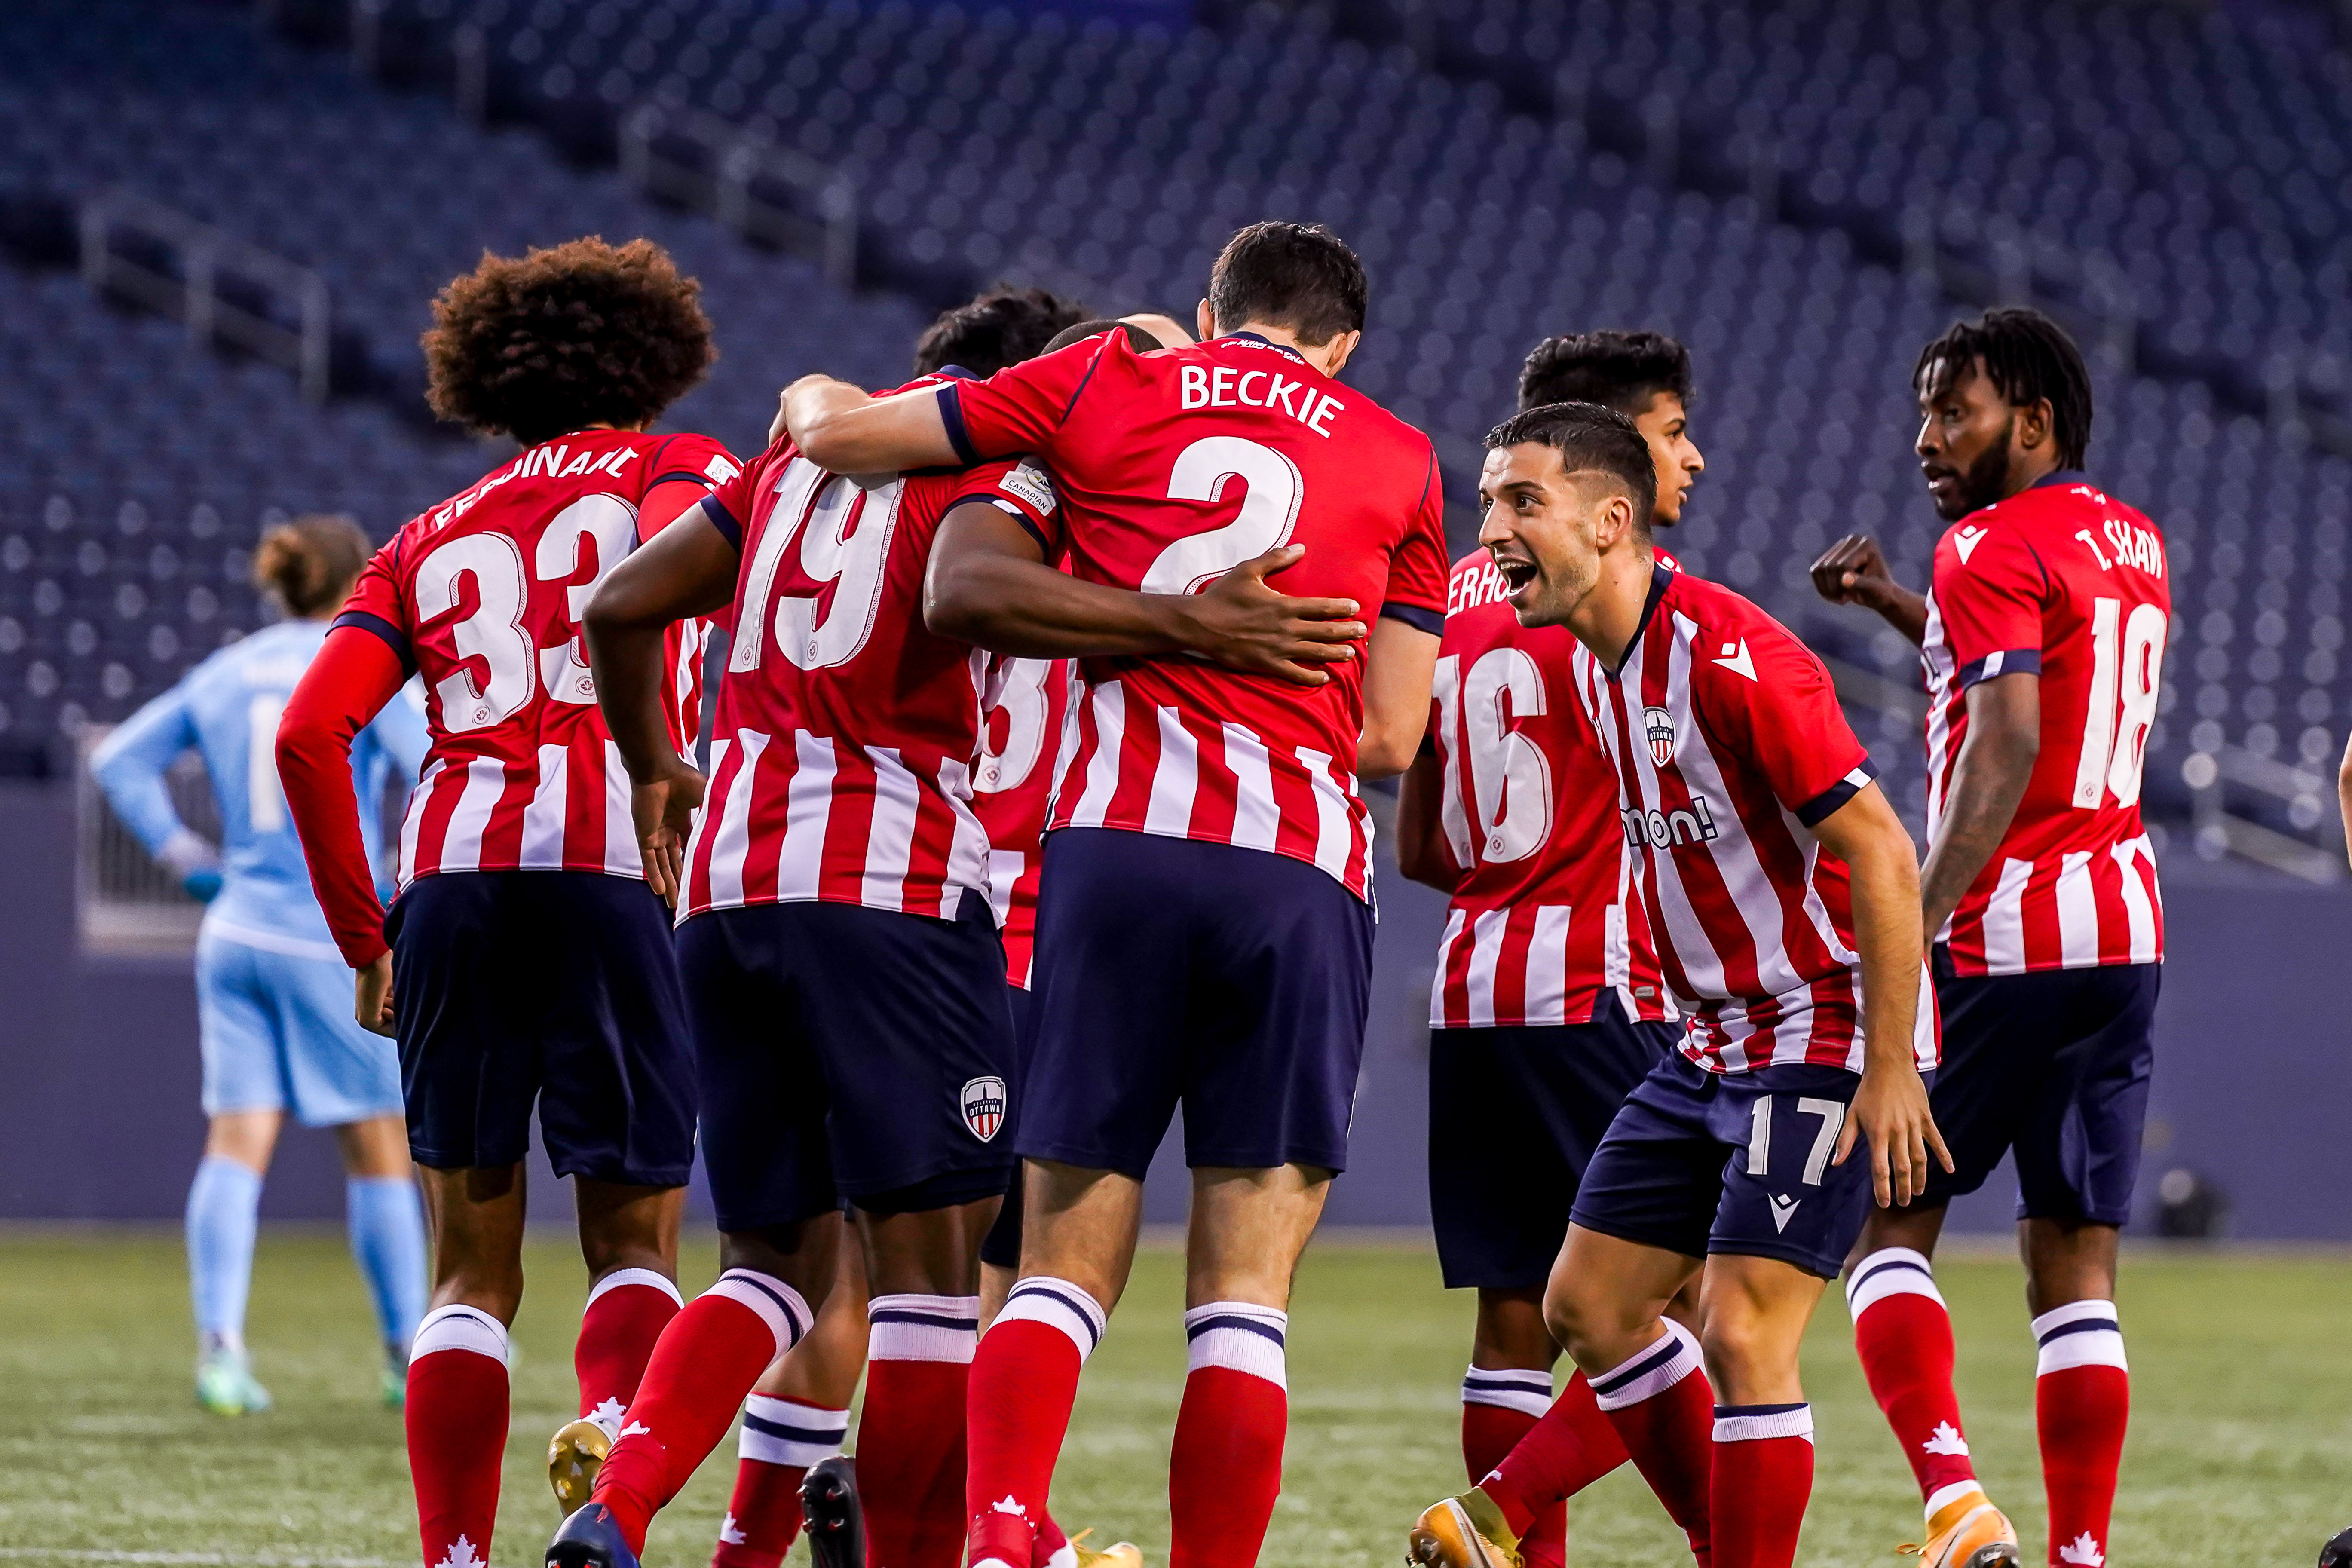 July 21, 2021. Pacific FC vs Atlético Ottawa. First-Half. Atlético Ottawa players celebrate following Malcolm Shaw's first-half goal against Pacific FC.